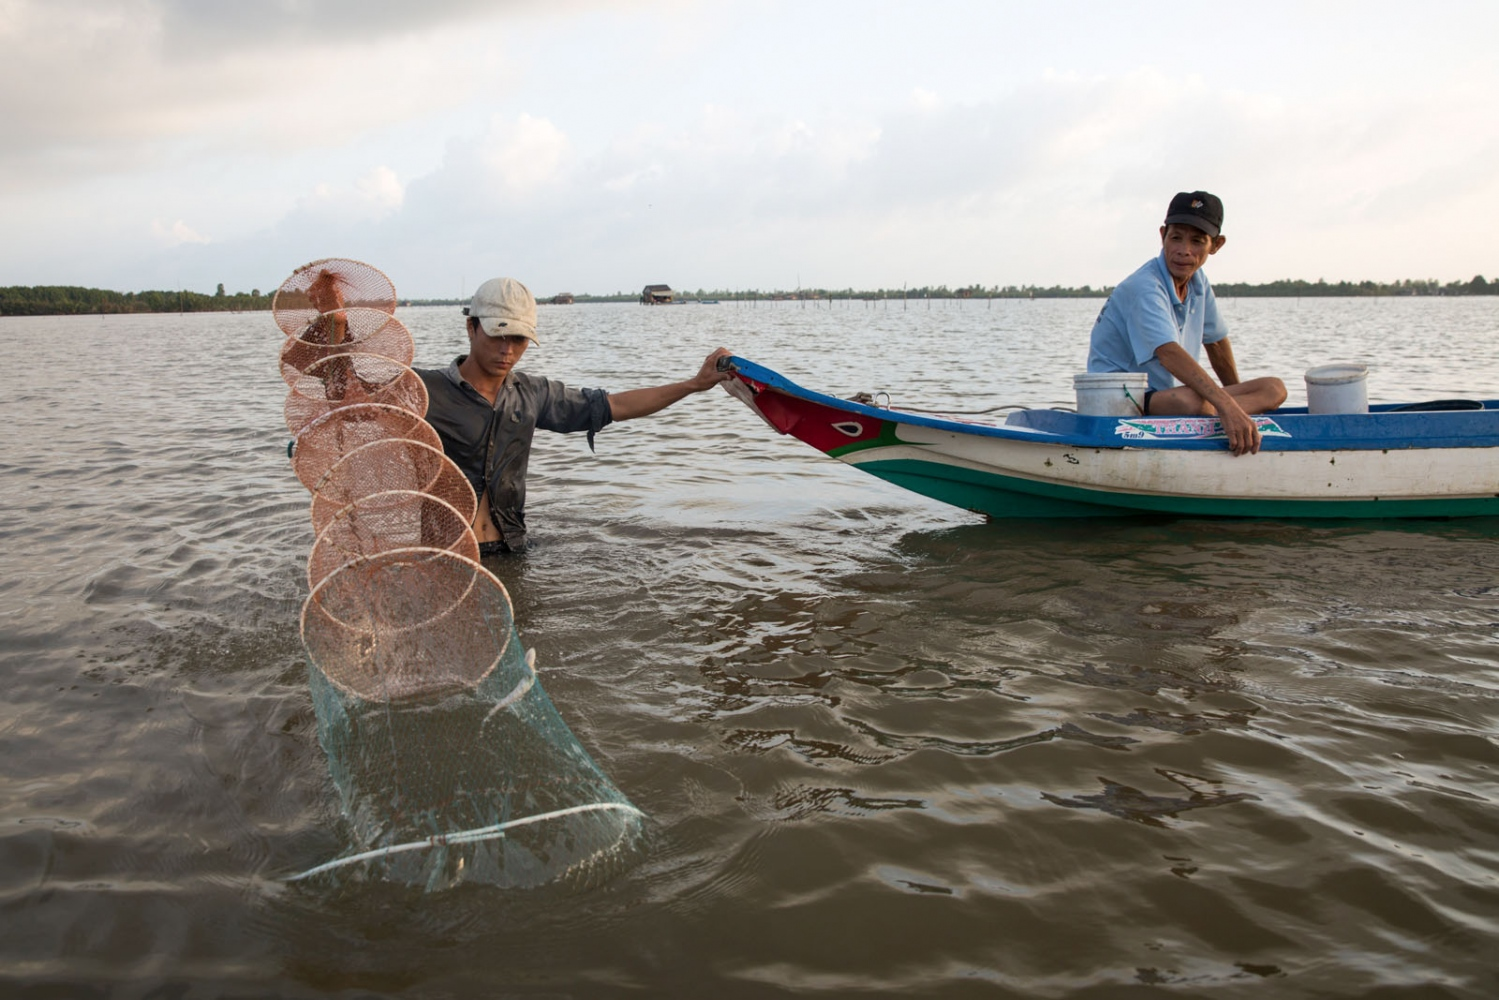 Two men check their nets at dawn on Thi Tuong Lagoon in Ca Mau Province. 2km wide and over 10km long it is the largest natural lagoon in the Delta and is home to hundreds of households who for generations have completely relied on the lagoon's marine resources for their subsistence. But now, everything has been changing rapidly. The visible rises in sea level and temperature have caused changes in the lagoon's natural flooding process. Normally, the lagoon is influenced by daily tidal effects and during the high tide adult marine life like fish and crabs from the sea migrate to hunt in lagoon. But during the low tide, larvae and juveniles are born and grown making it a perfect sanctuary for many marine species. However, in recent years, local farmers have witnessed more frequent flooding in the lagoon meaning that the high tide is increasingly high, leaving little space for a tidal mud flat where baby shrimp and crab can grow.